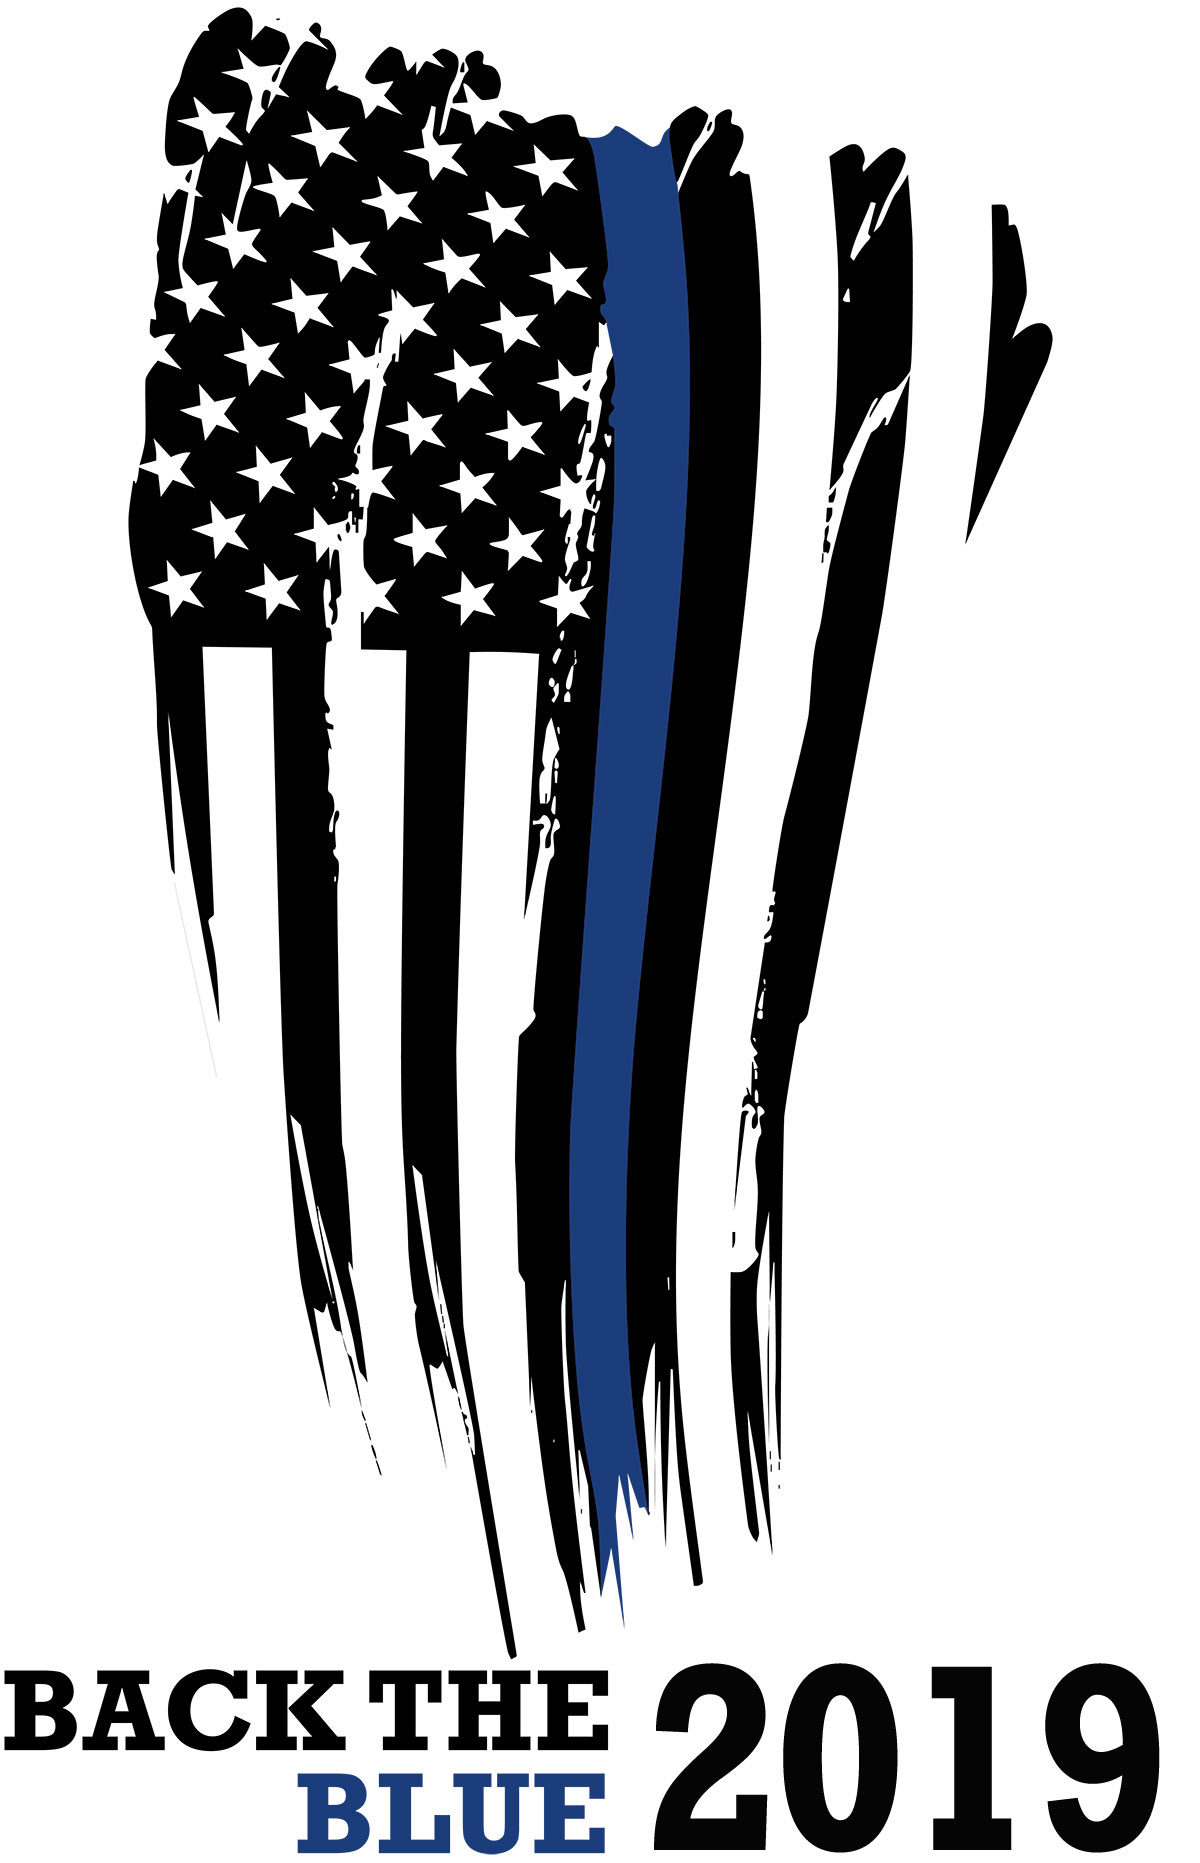 Back the Blue 2019 Flag